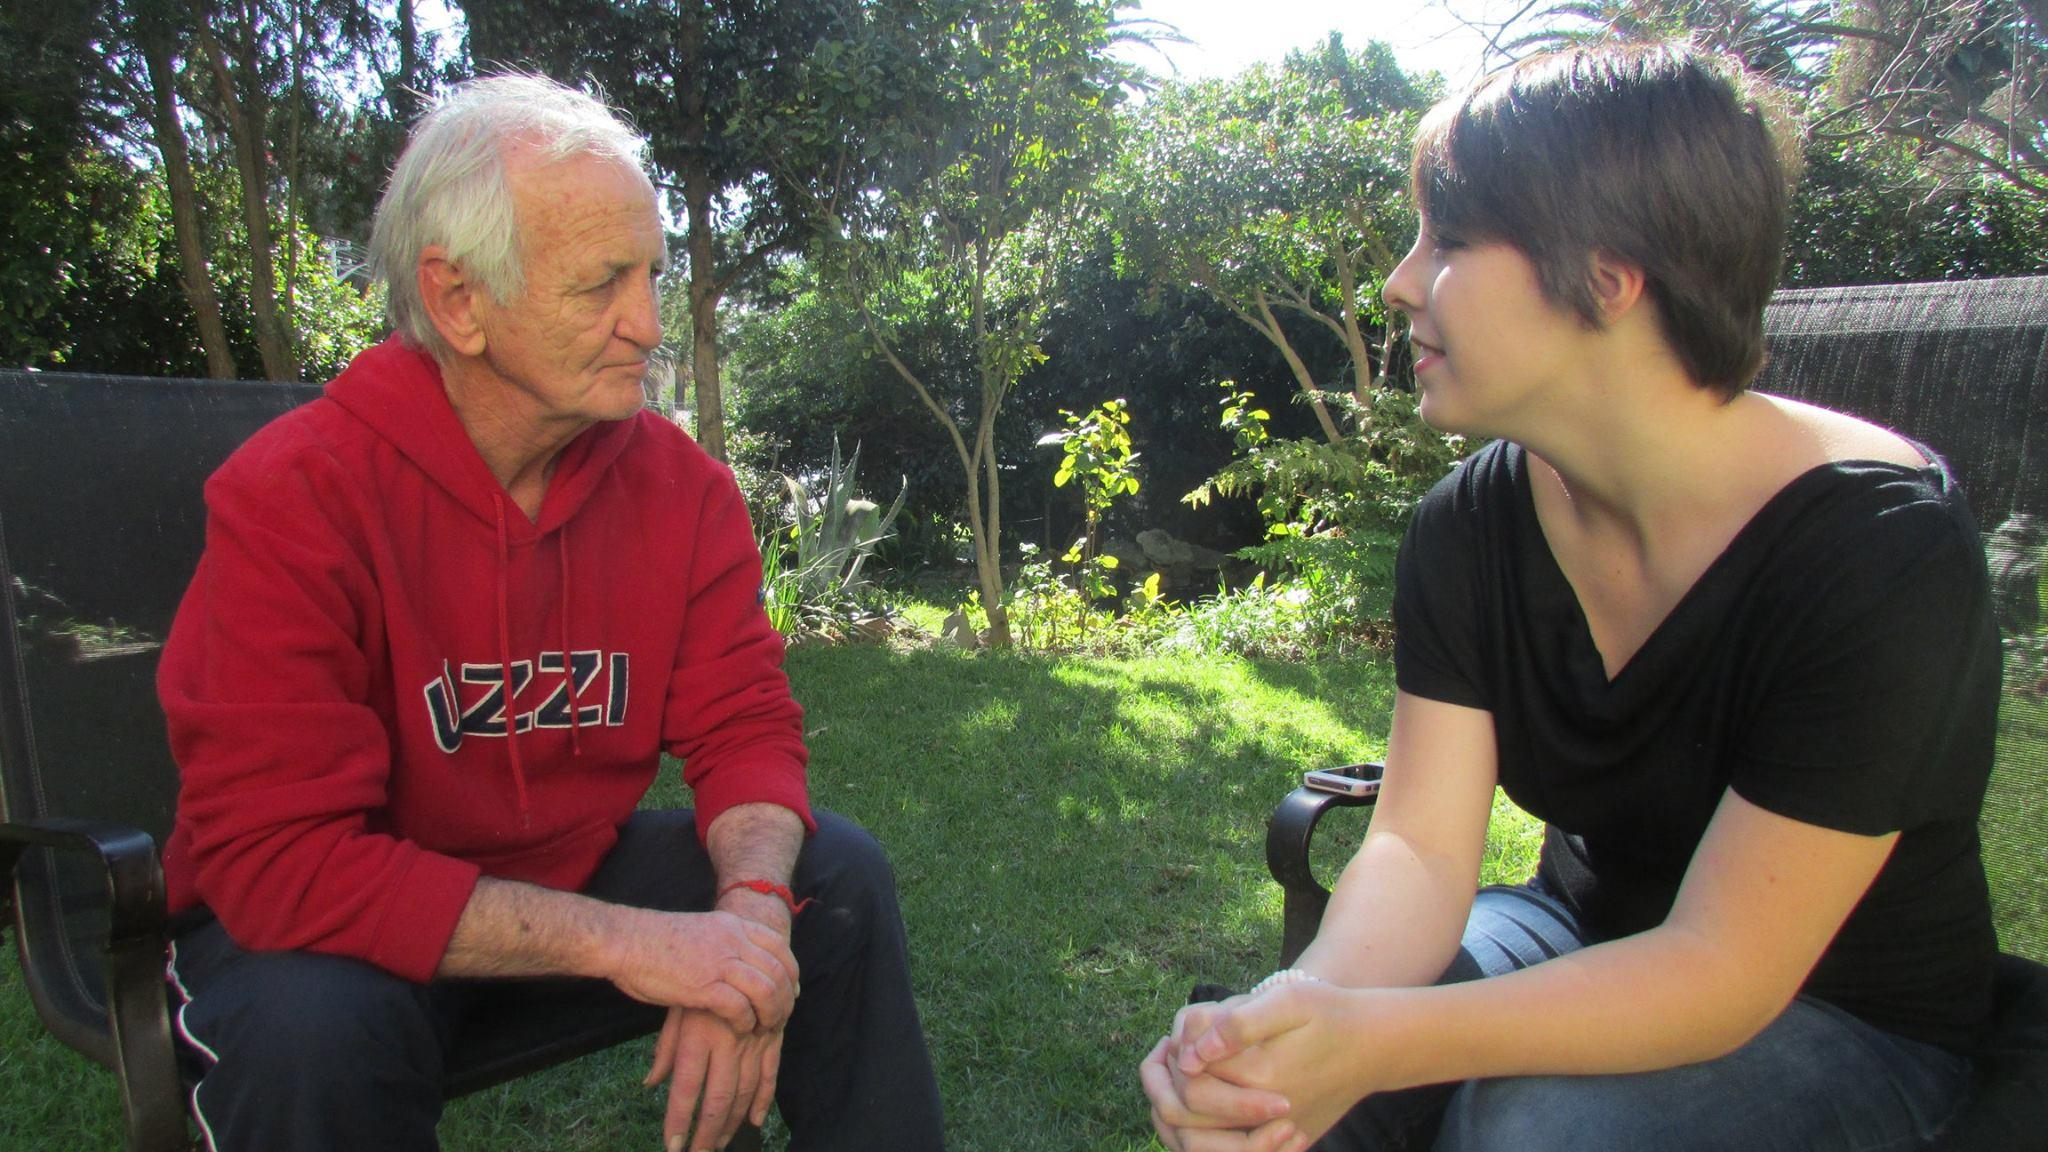 A local man is interviewed by a student doing a Journalism internship in South Africa.